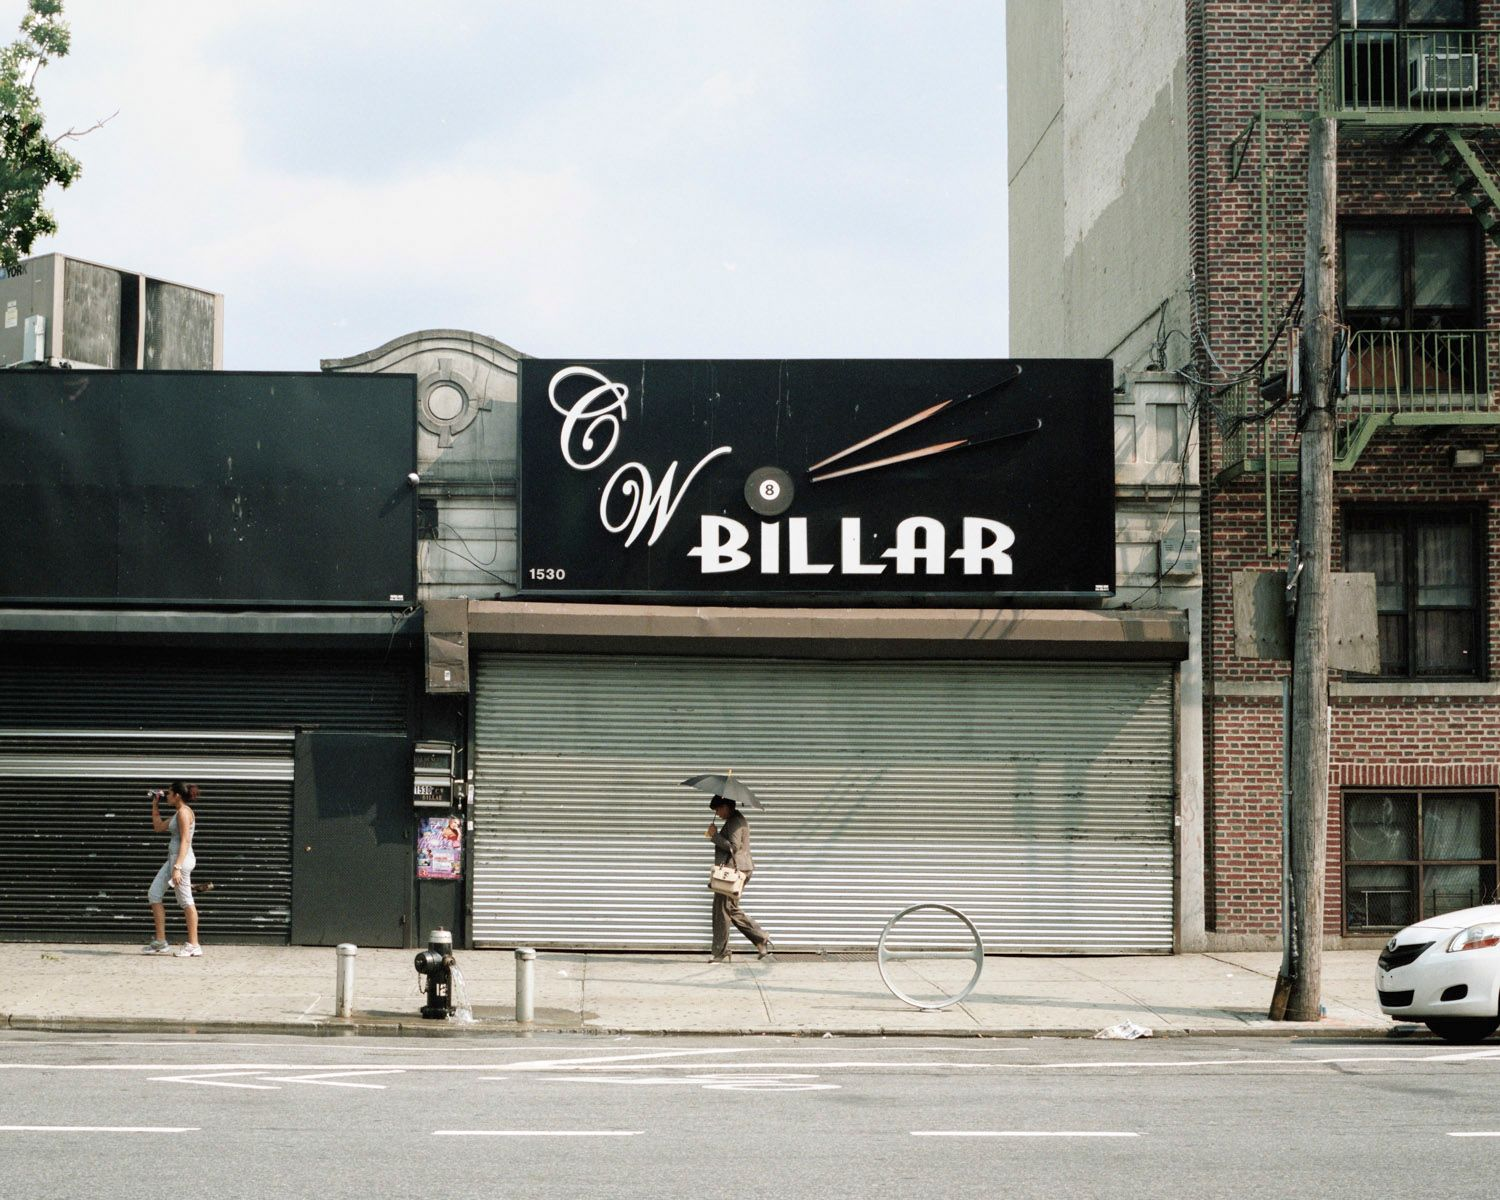 #allcitiesarebeautiful 040 Ira Wagner — New York City